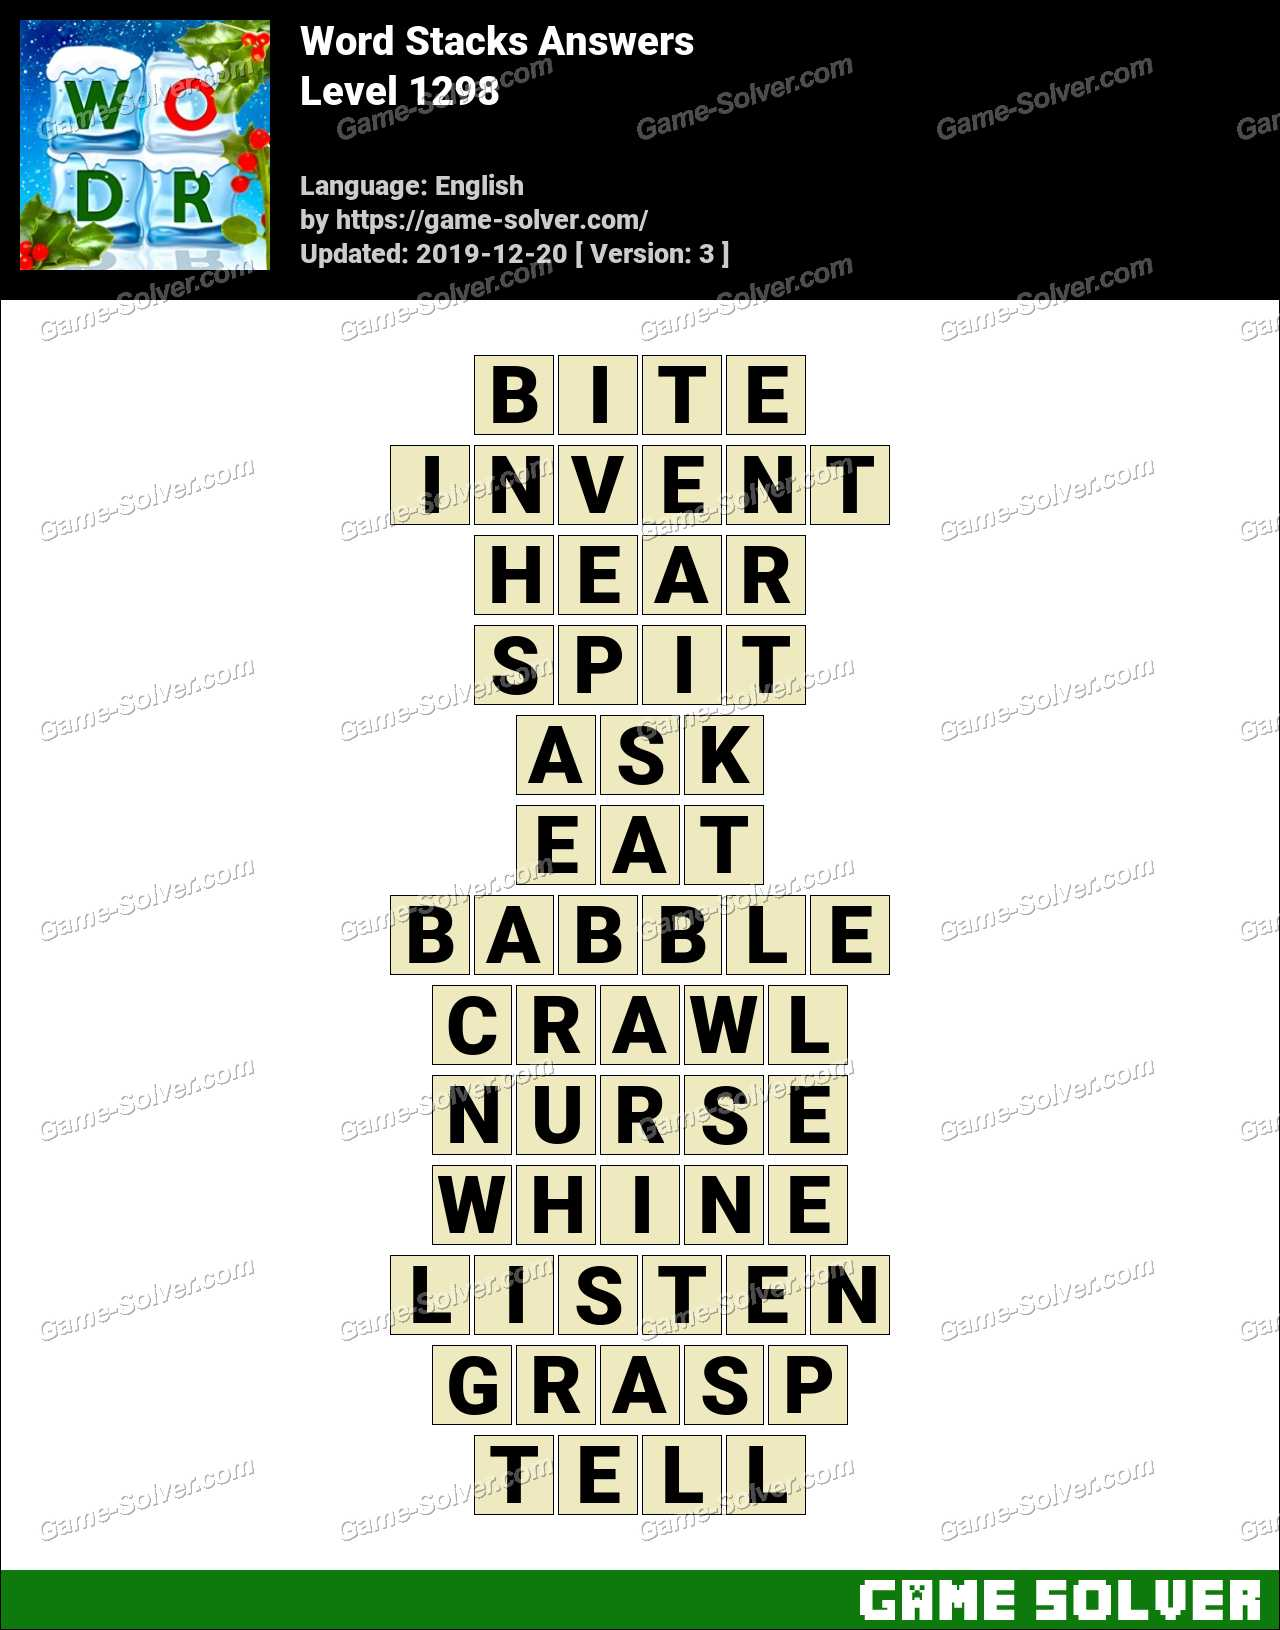 Word Stacks Level 1298 Answers